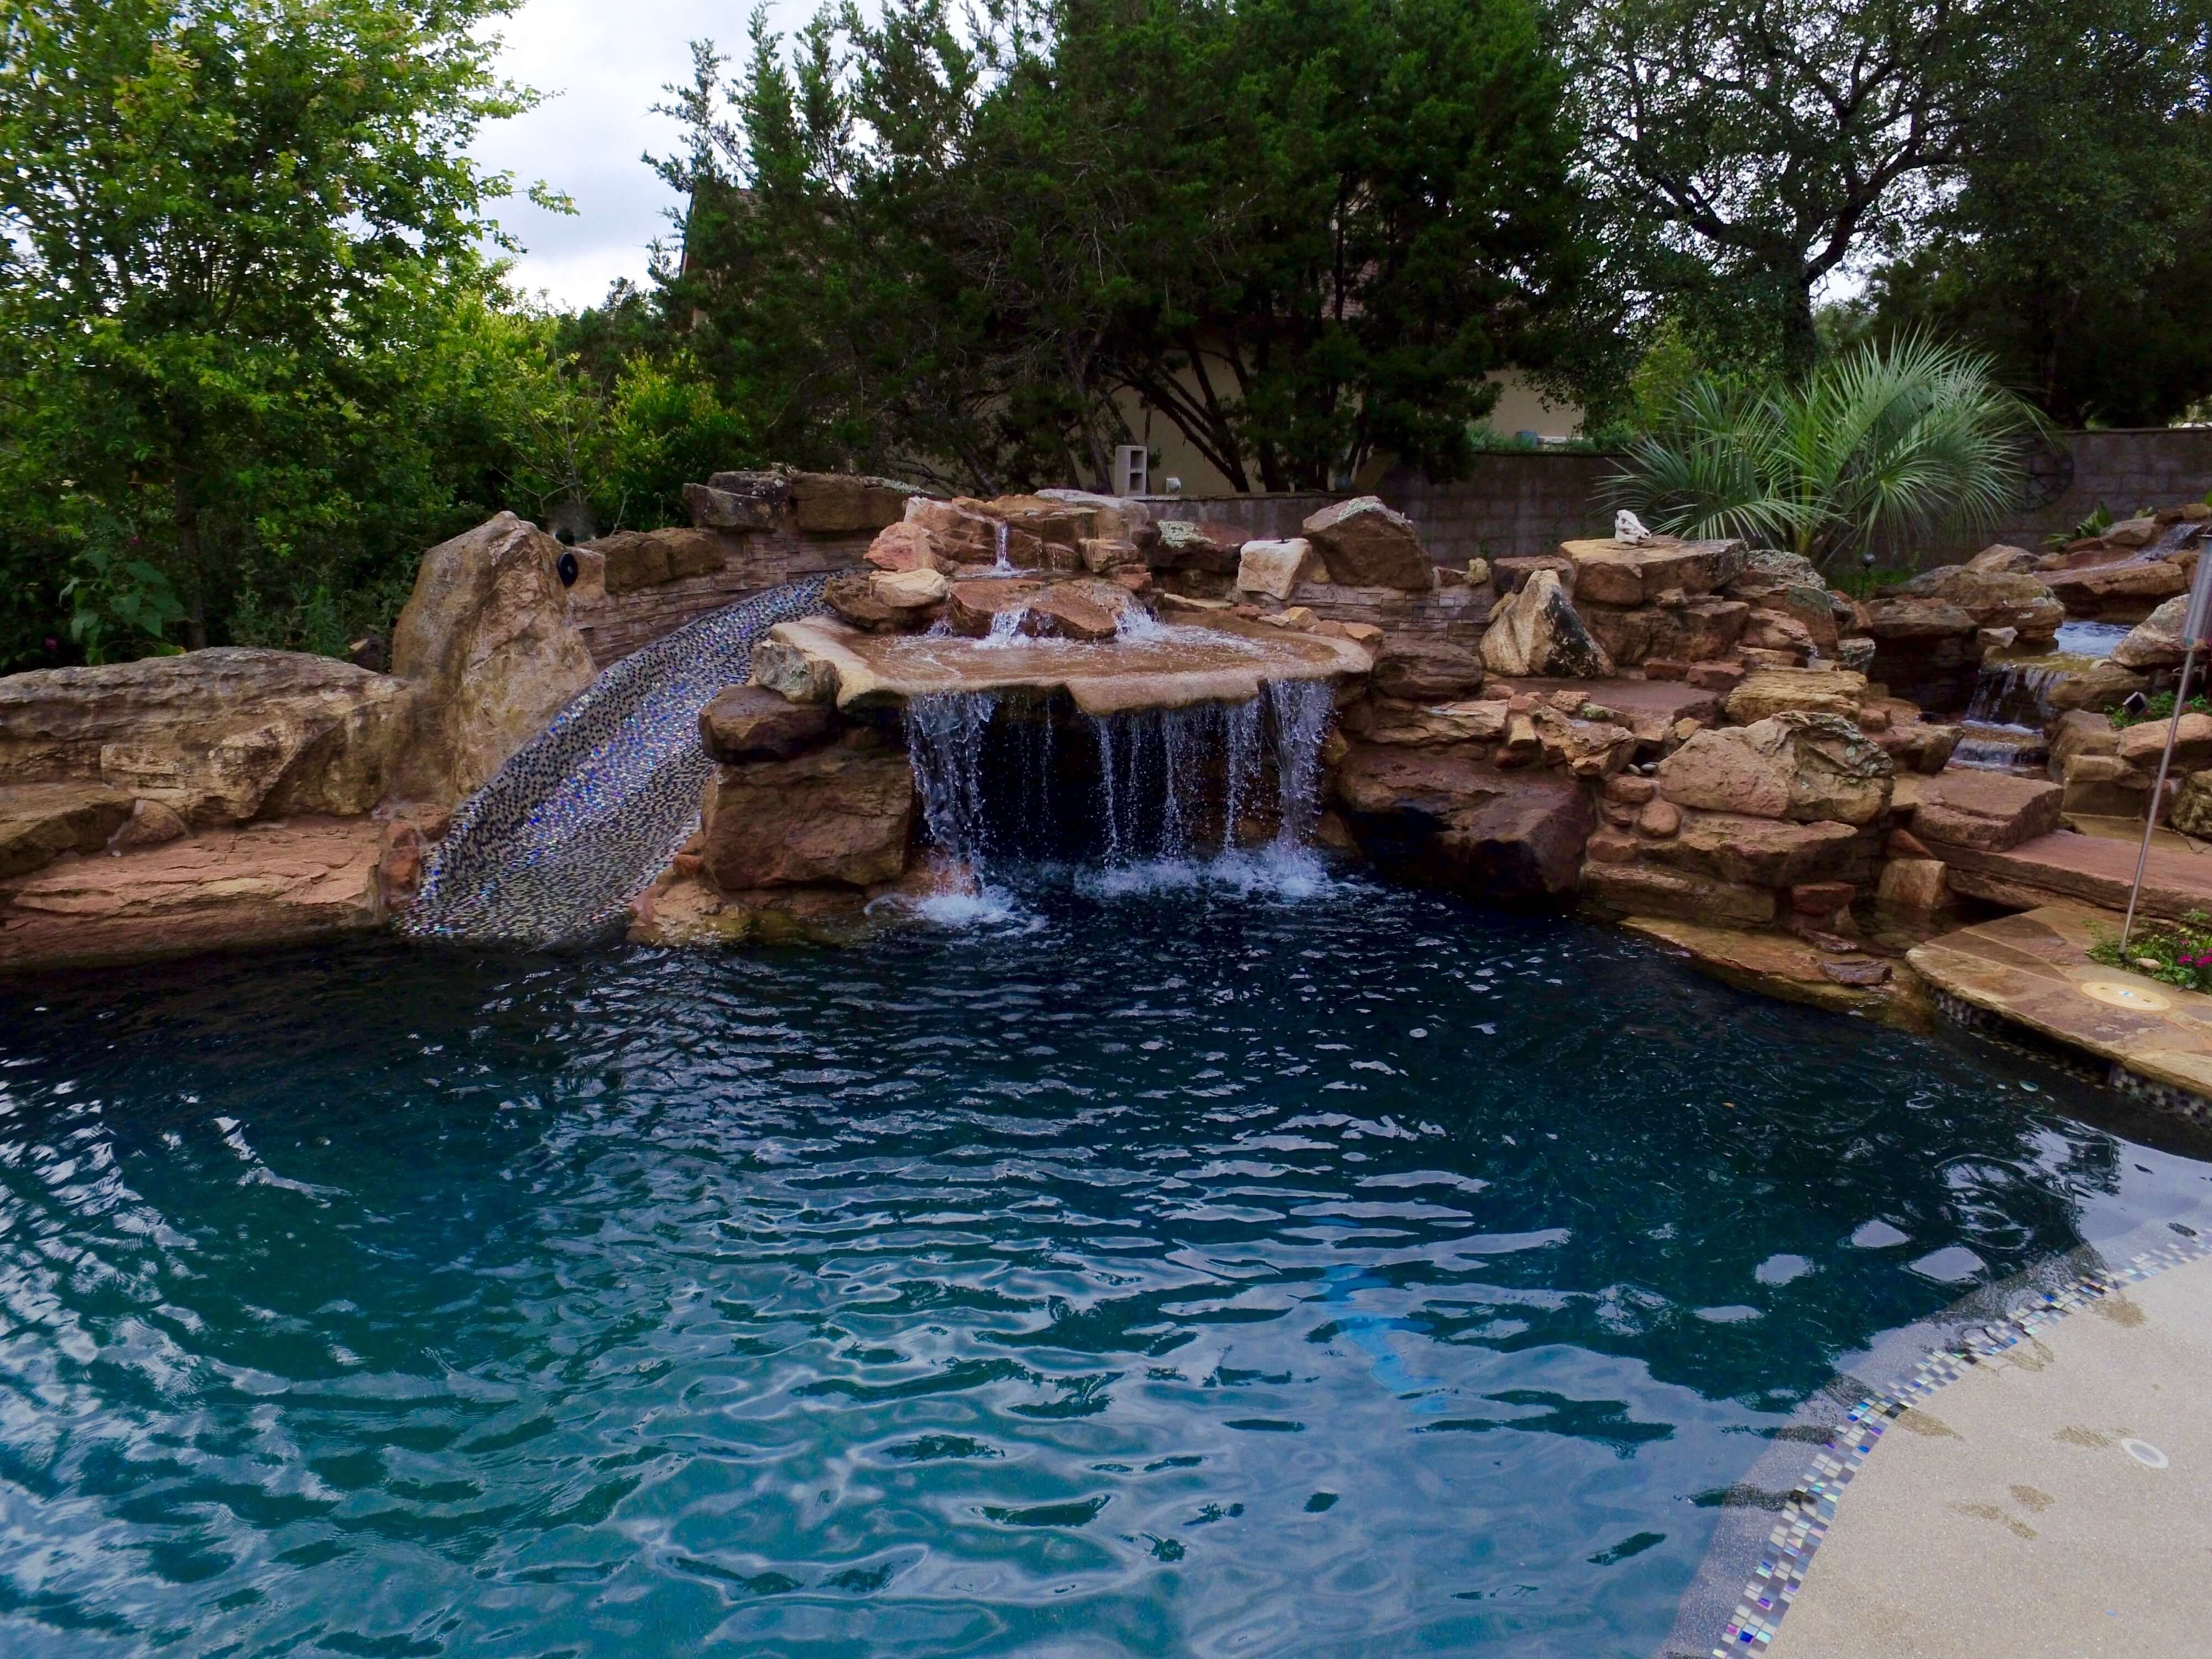 Water Features Spring Branch Fire Woks Boerne New Braunfels Grotto Waterfall With Cave Lar Backyard Pool Landscaping Pool Landscaping Pool Water Features